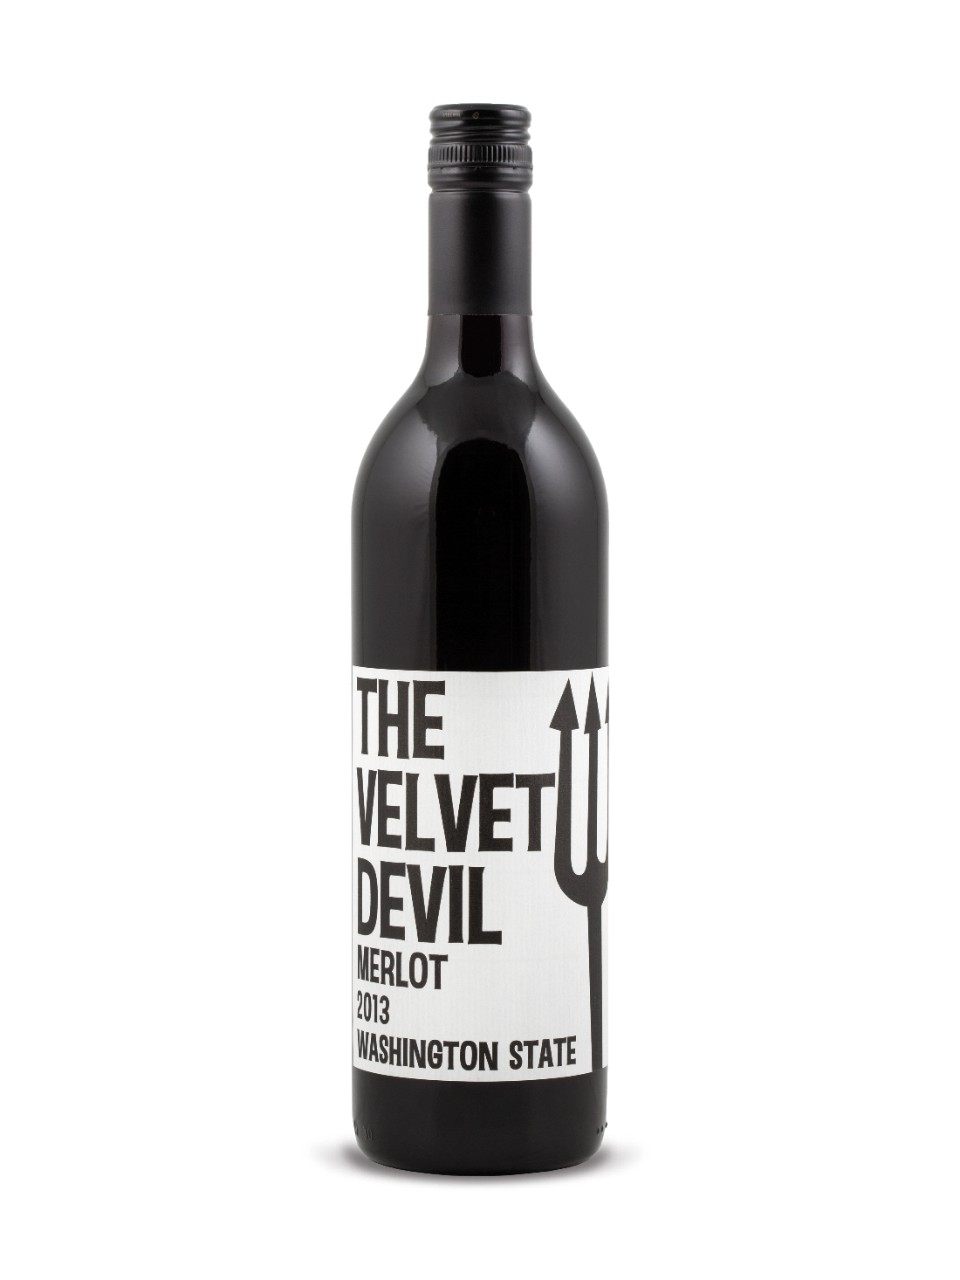 Pair The Velvet Devil Merlot with Stranger Things for some spooky BOO-zing.